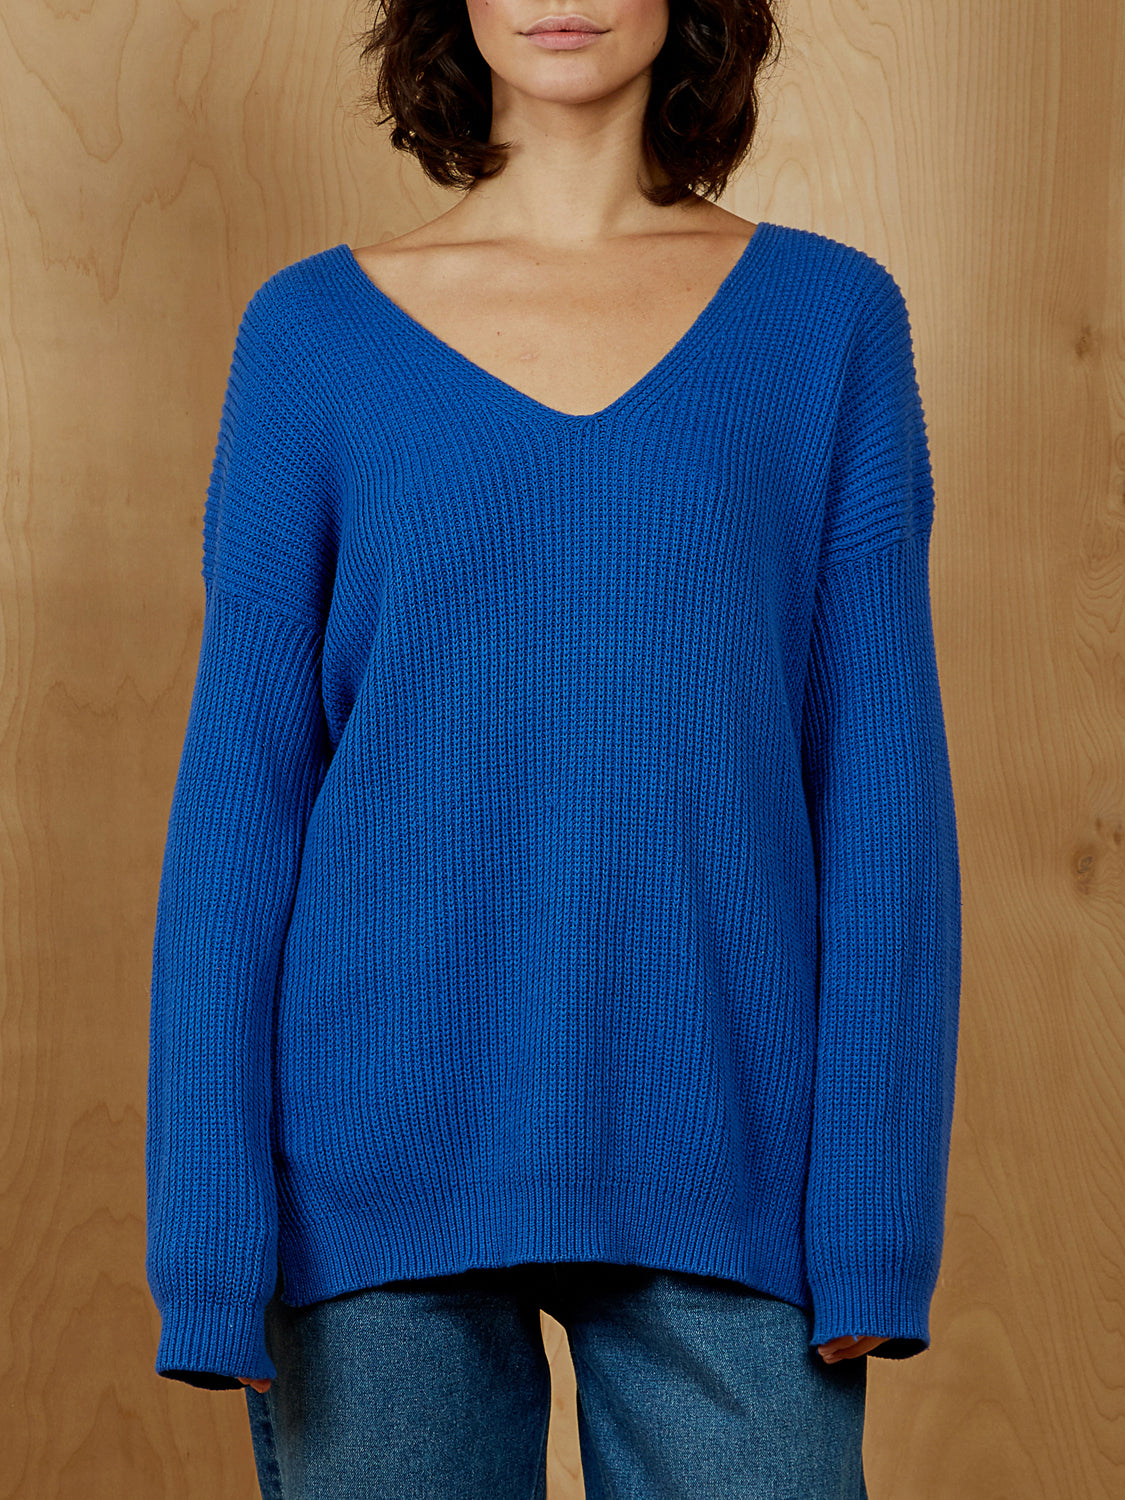 Joe Fresh Long Sleeve Sweater